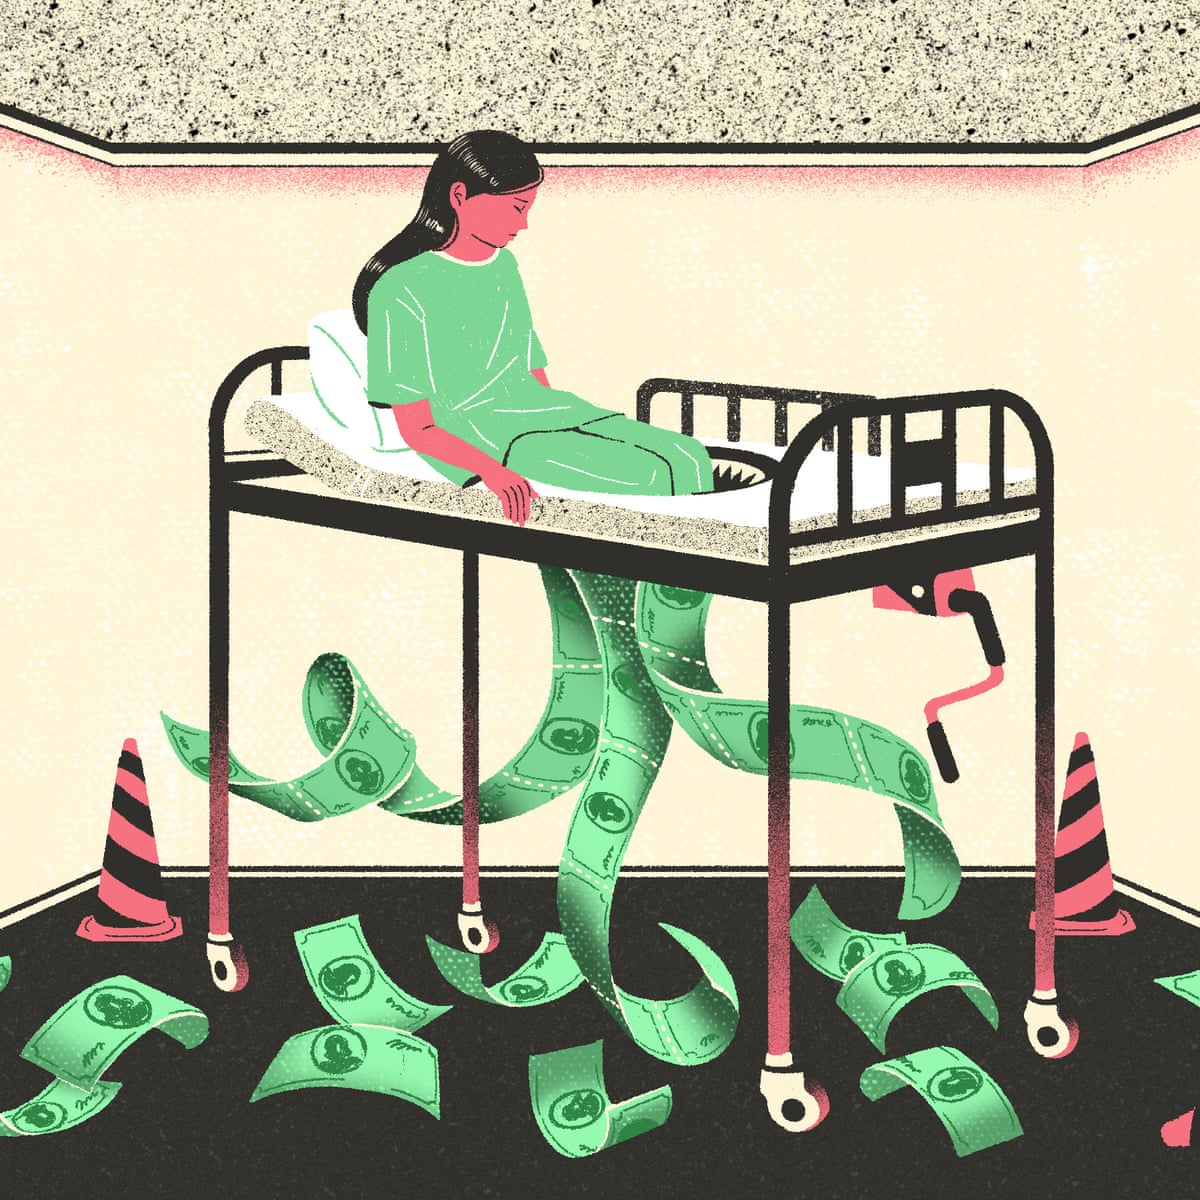 I Live On The Street Now How Americans Fall Into Medical Bankruptcy Us Healthcare The Guardian